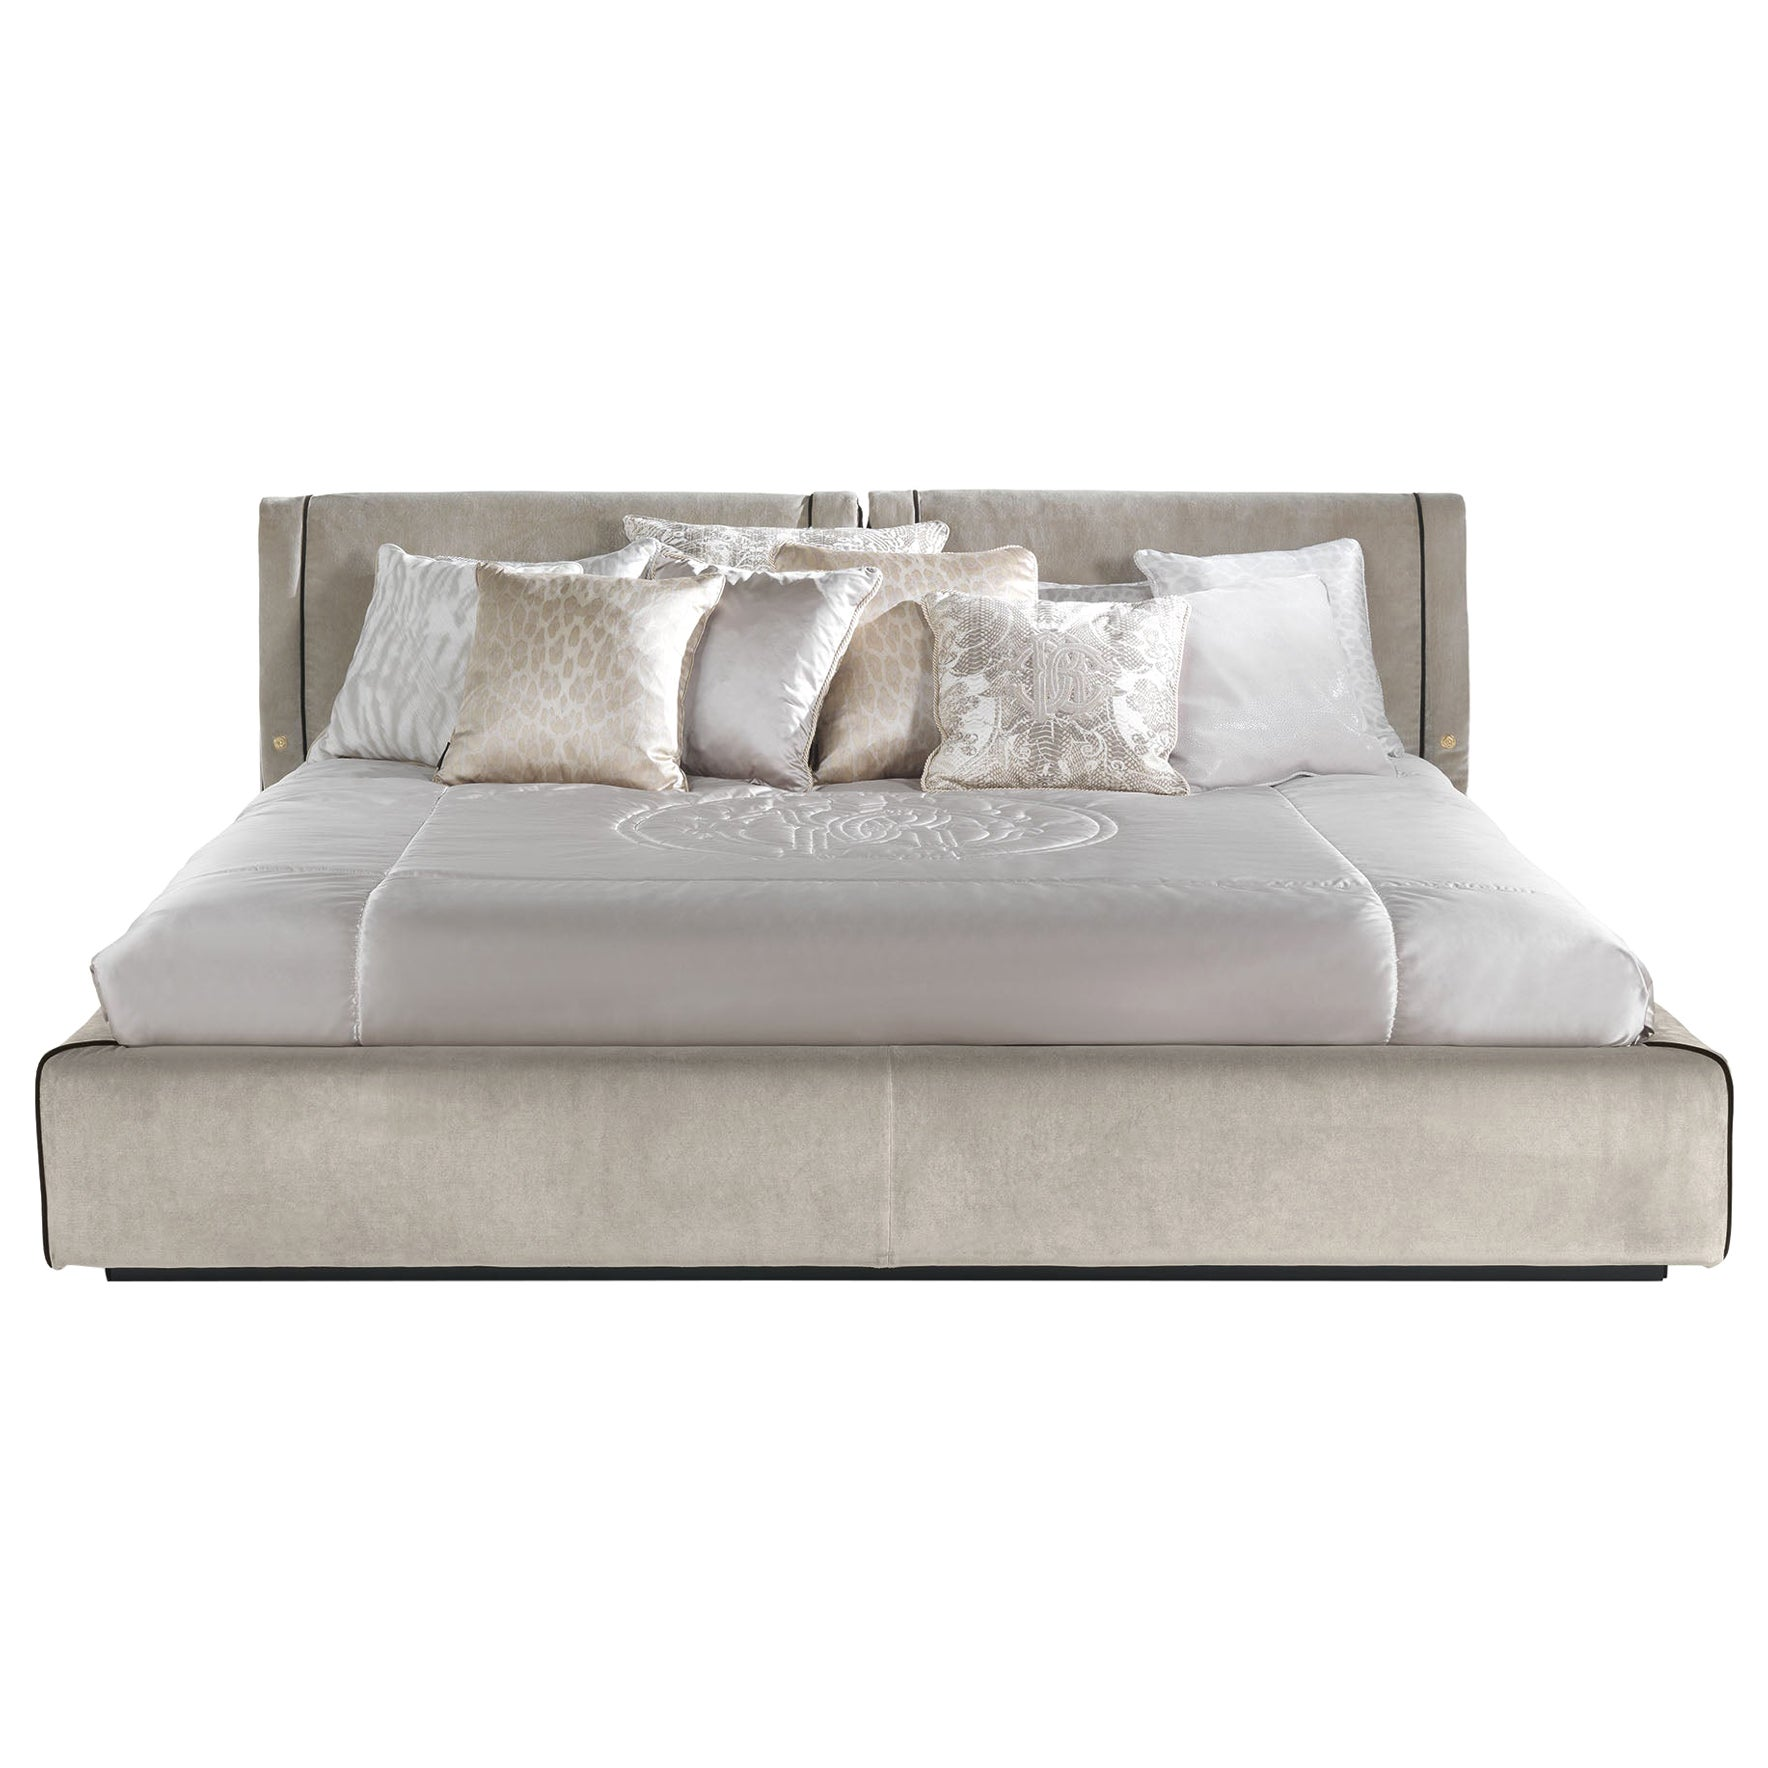 Smoking Bed in Sand Velvet with Brown Piping by Roberto Cavalli Home Interiors